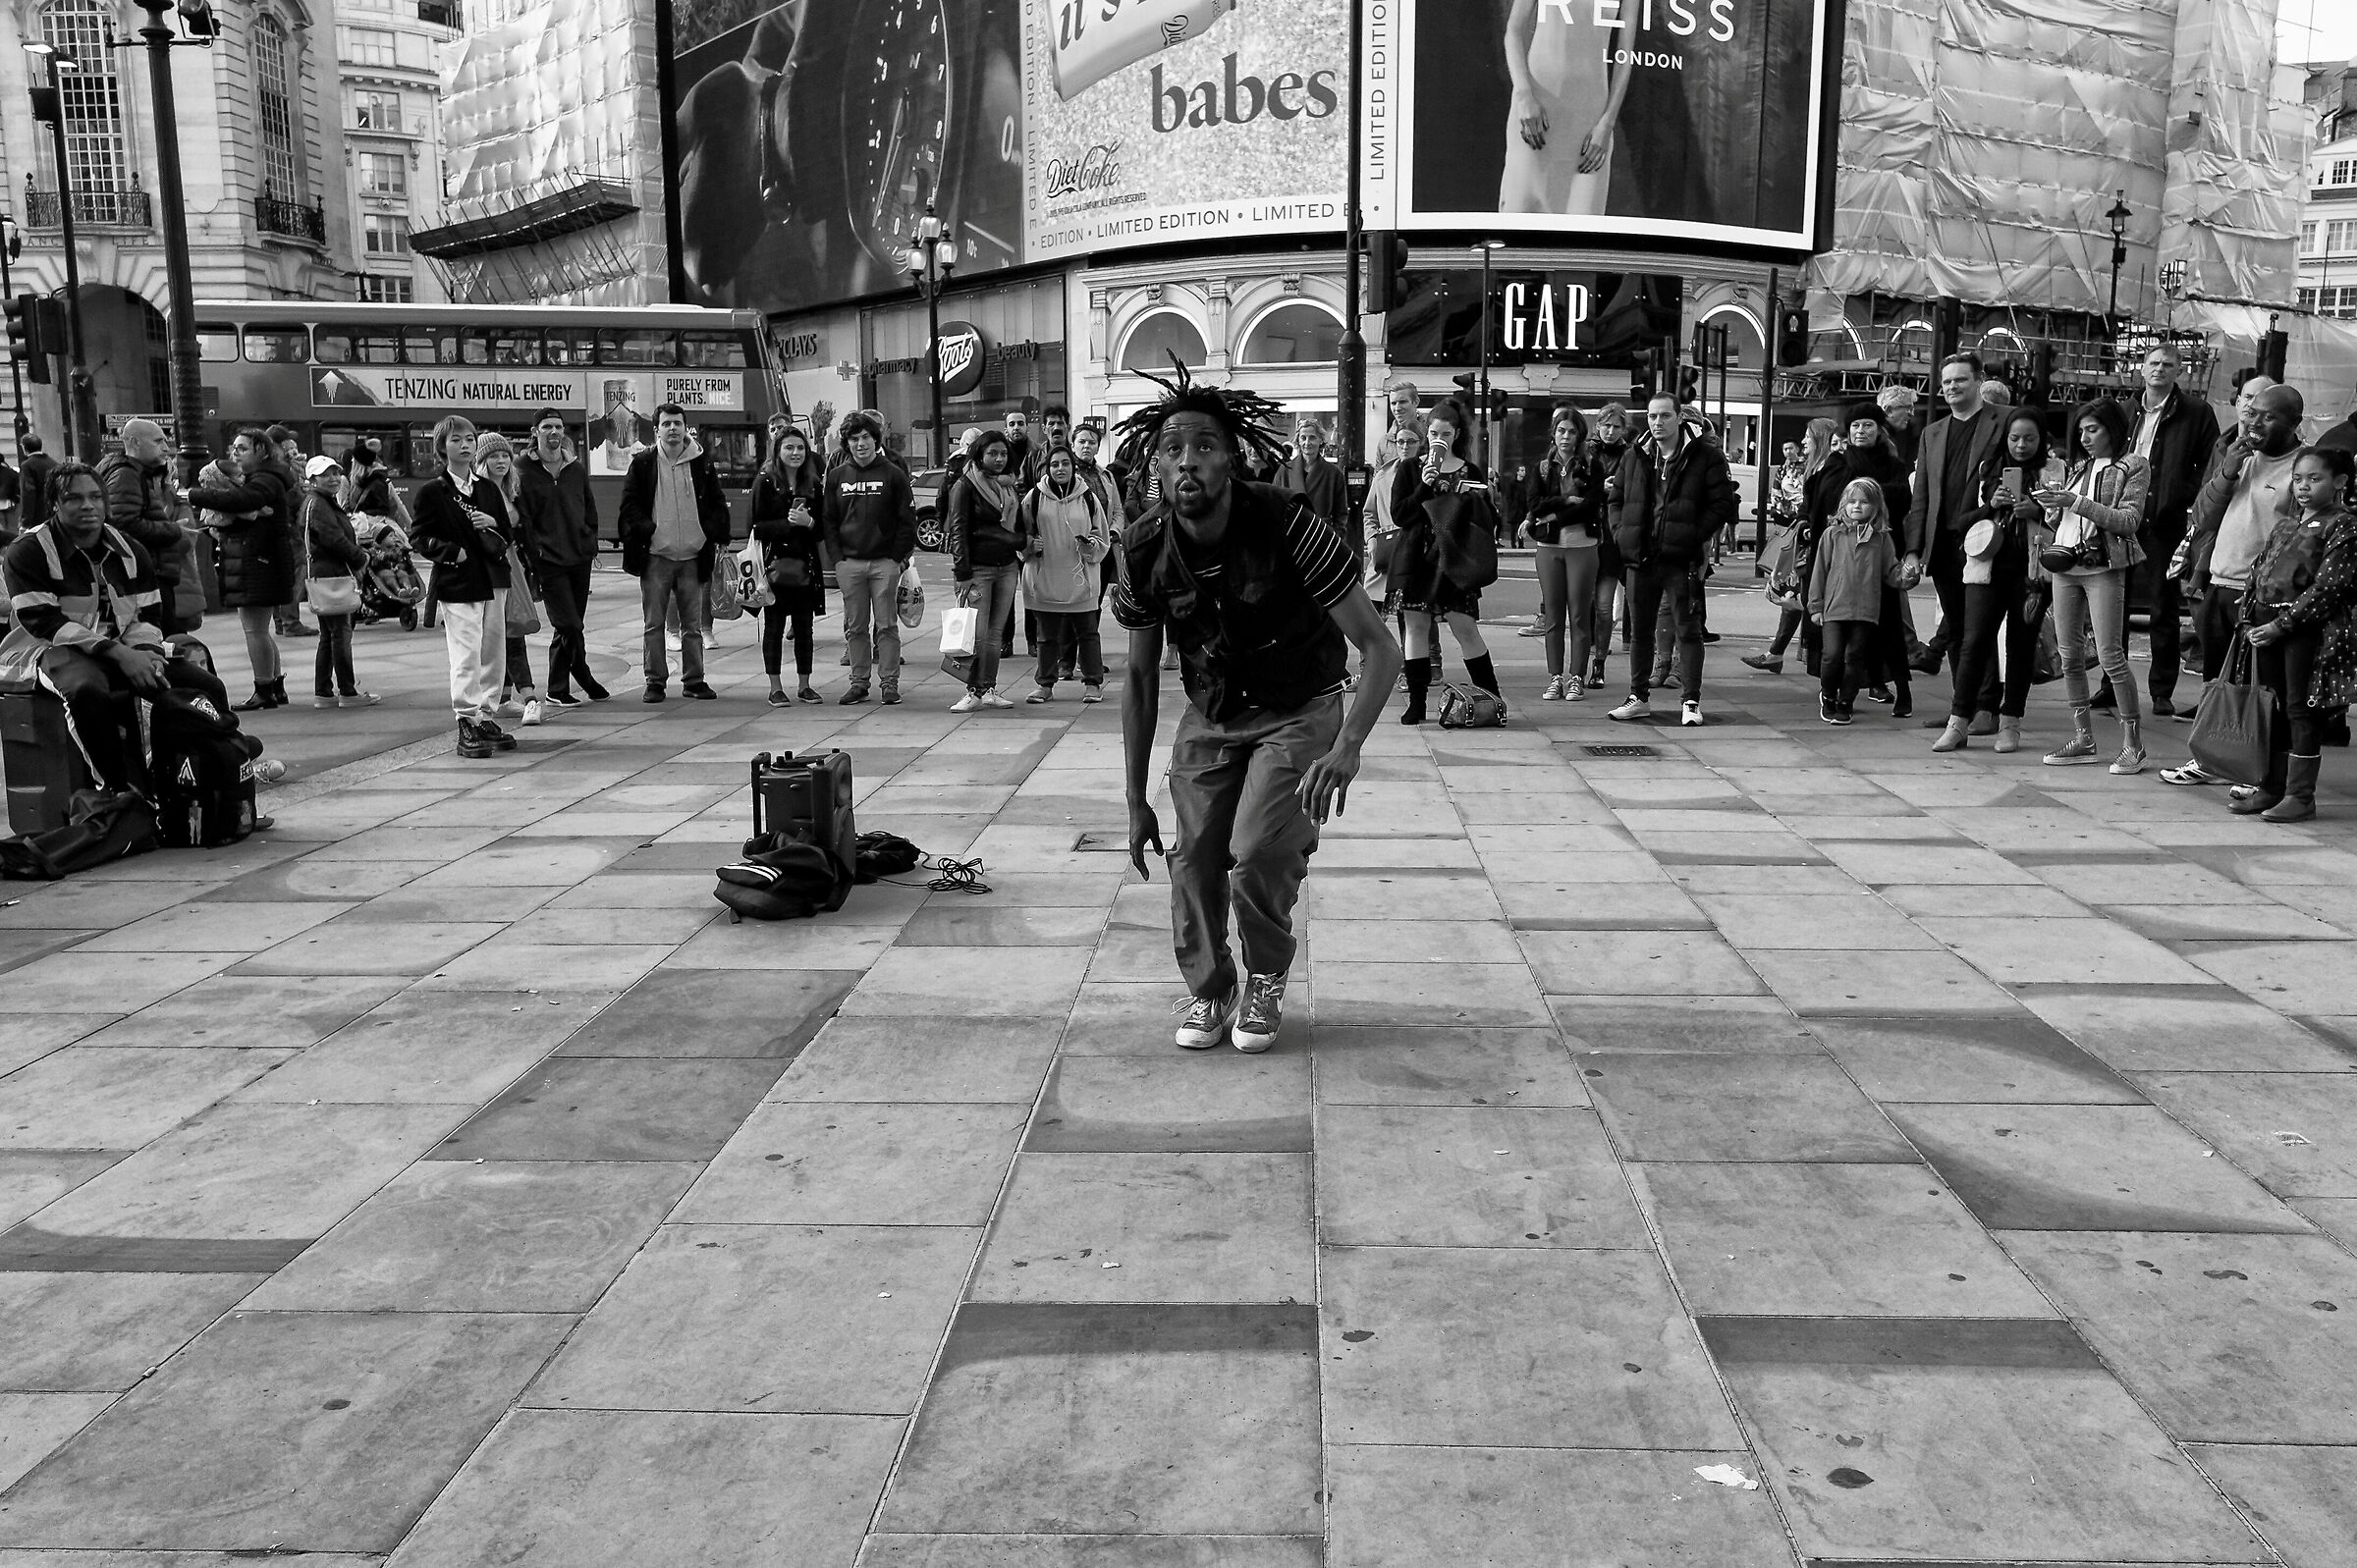 Saturday afternoon in Piccadilly Circus...